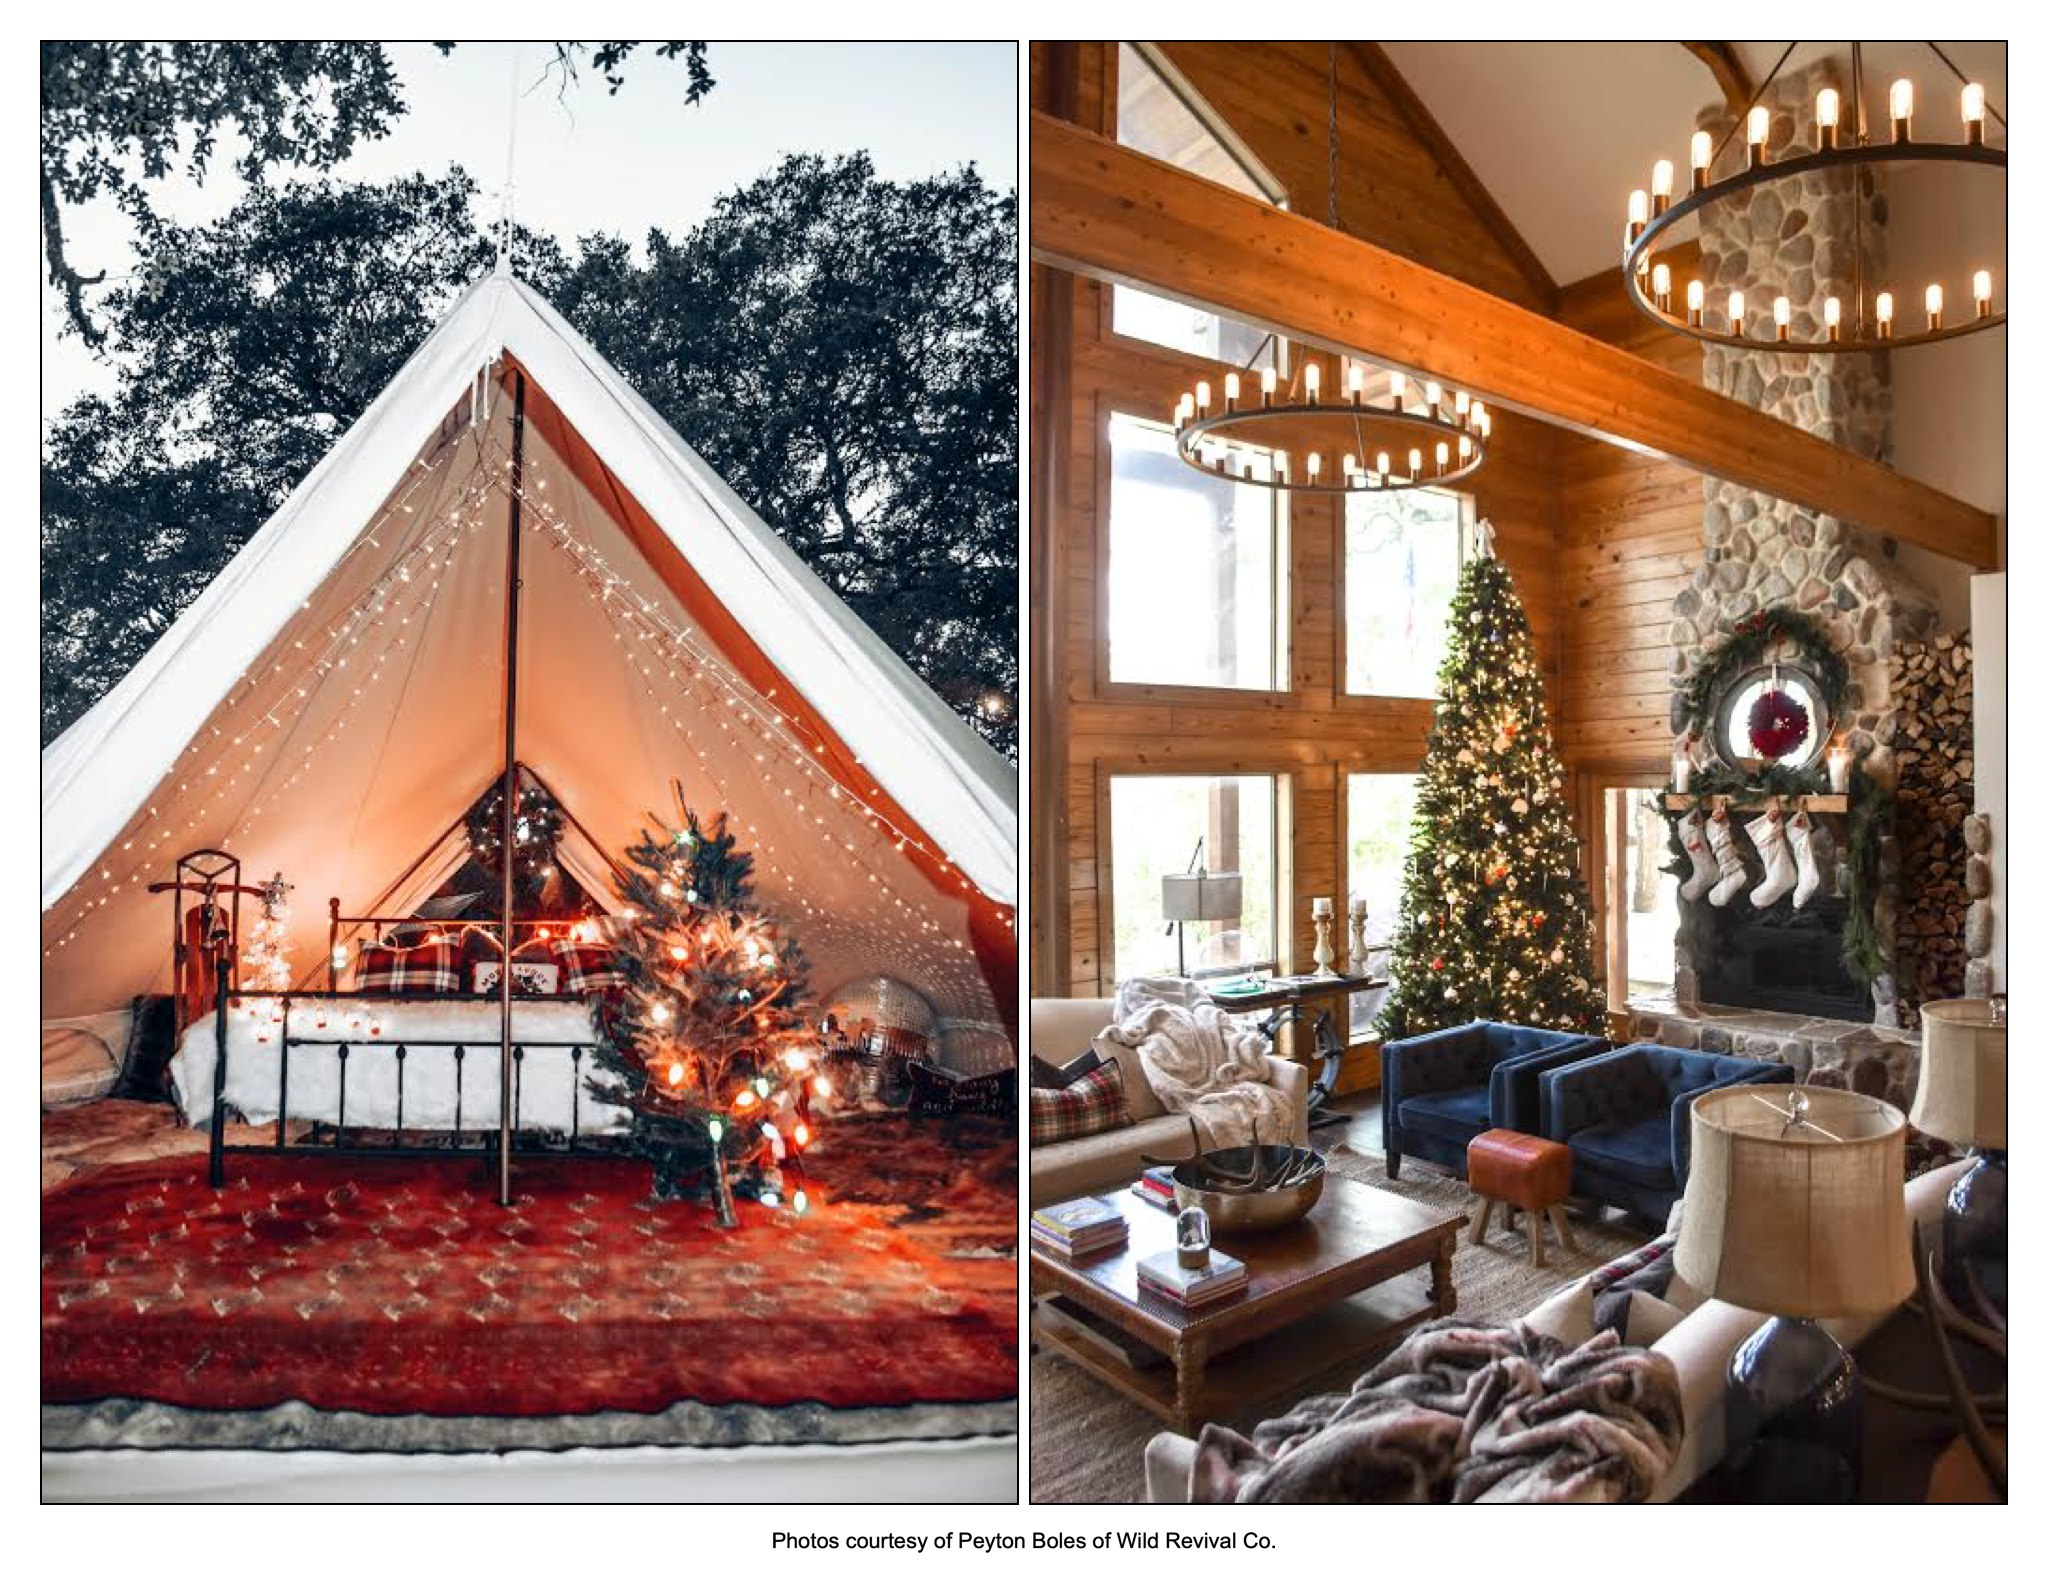 Cozy Christmas styled cabin and tent, San Antonio, TX. Wild Revival Co.